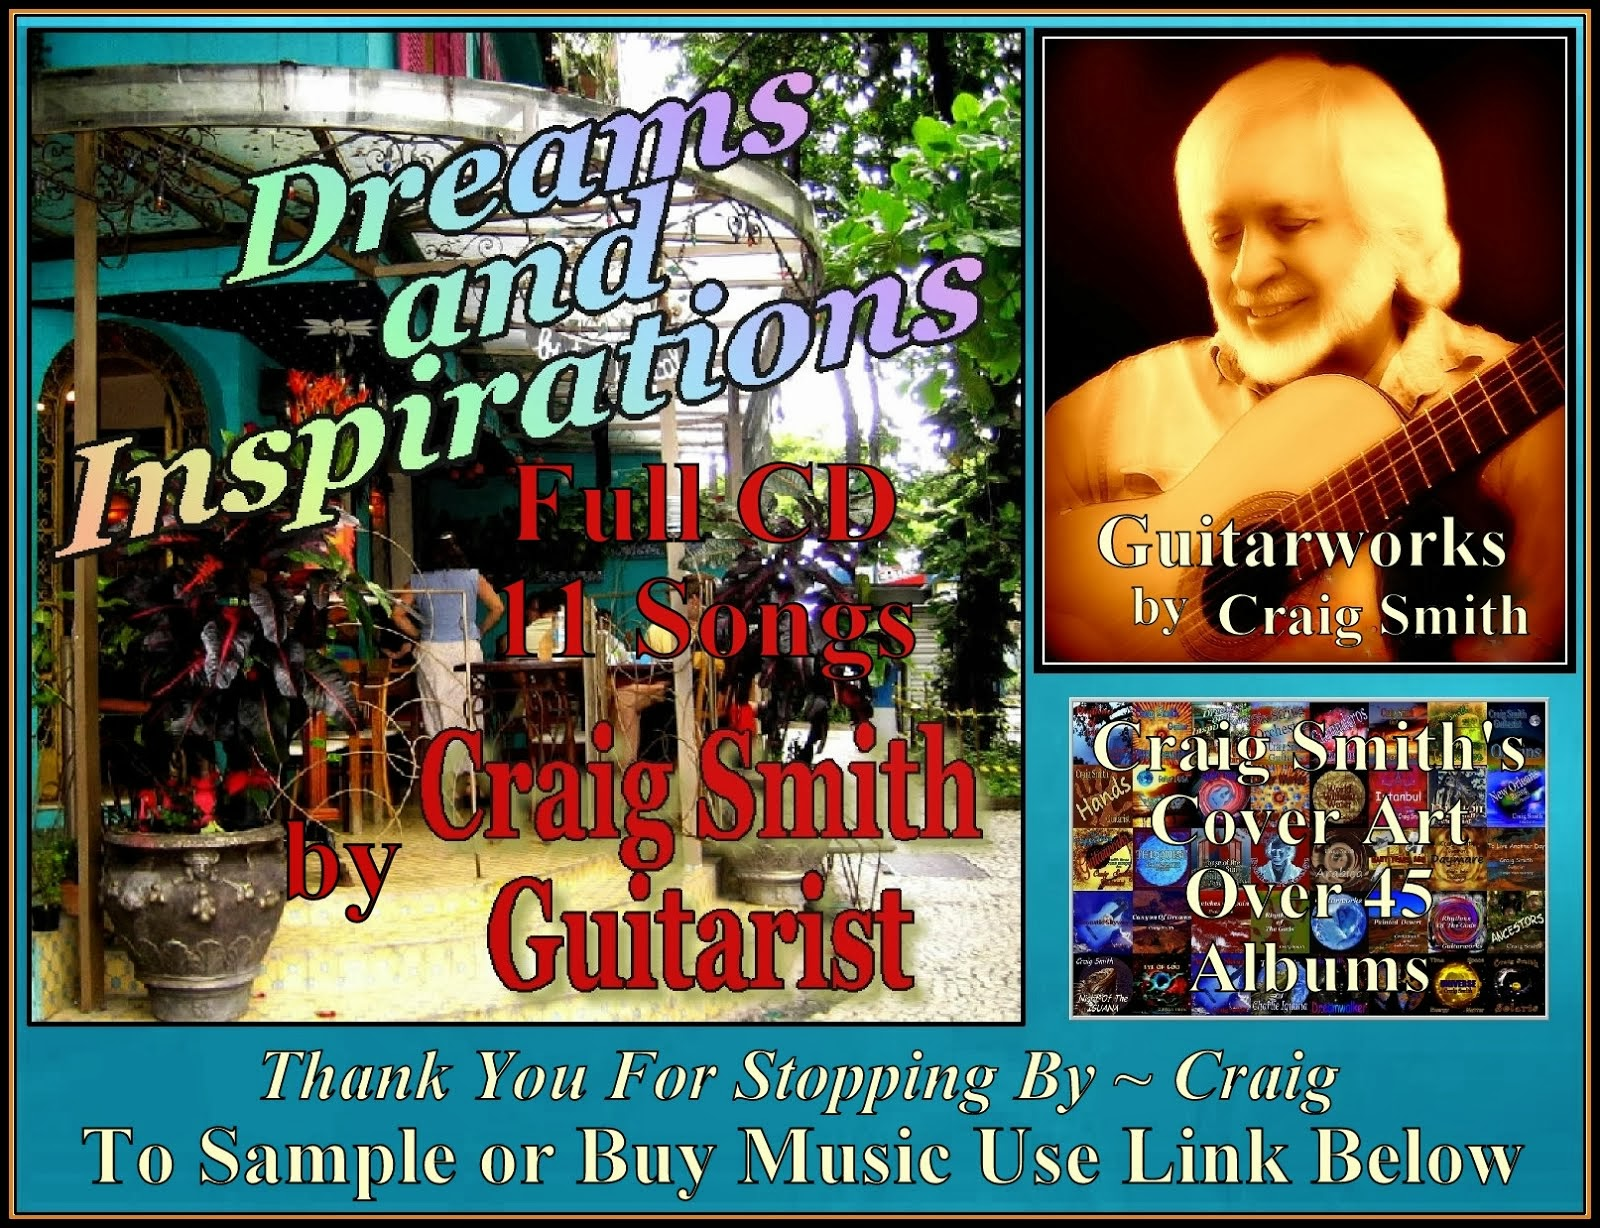 More Guitarworks by Craig Smith